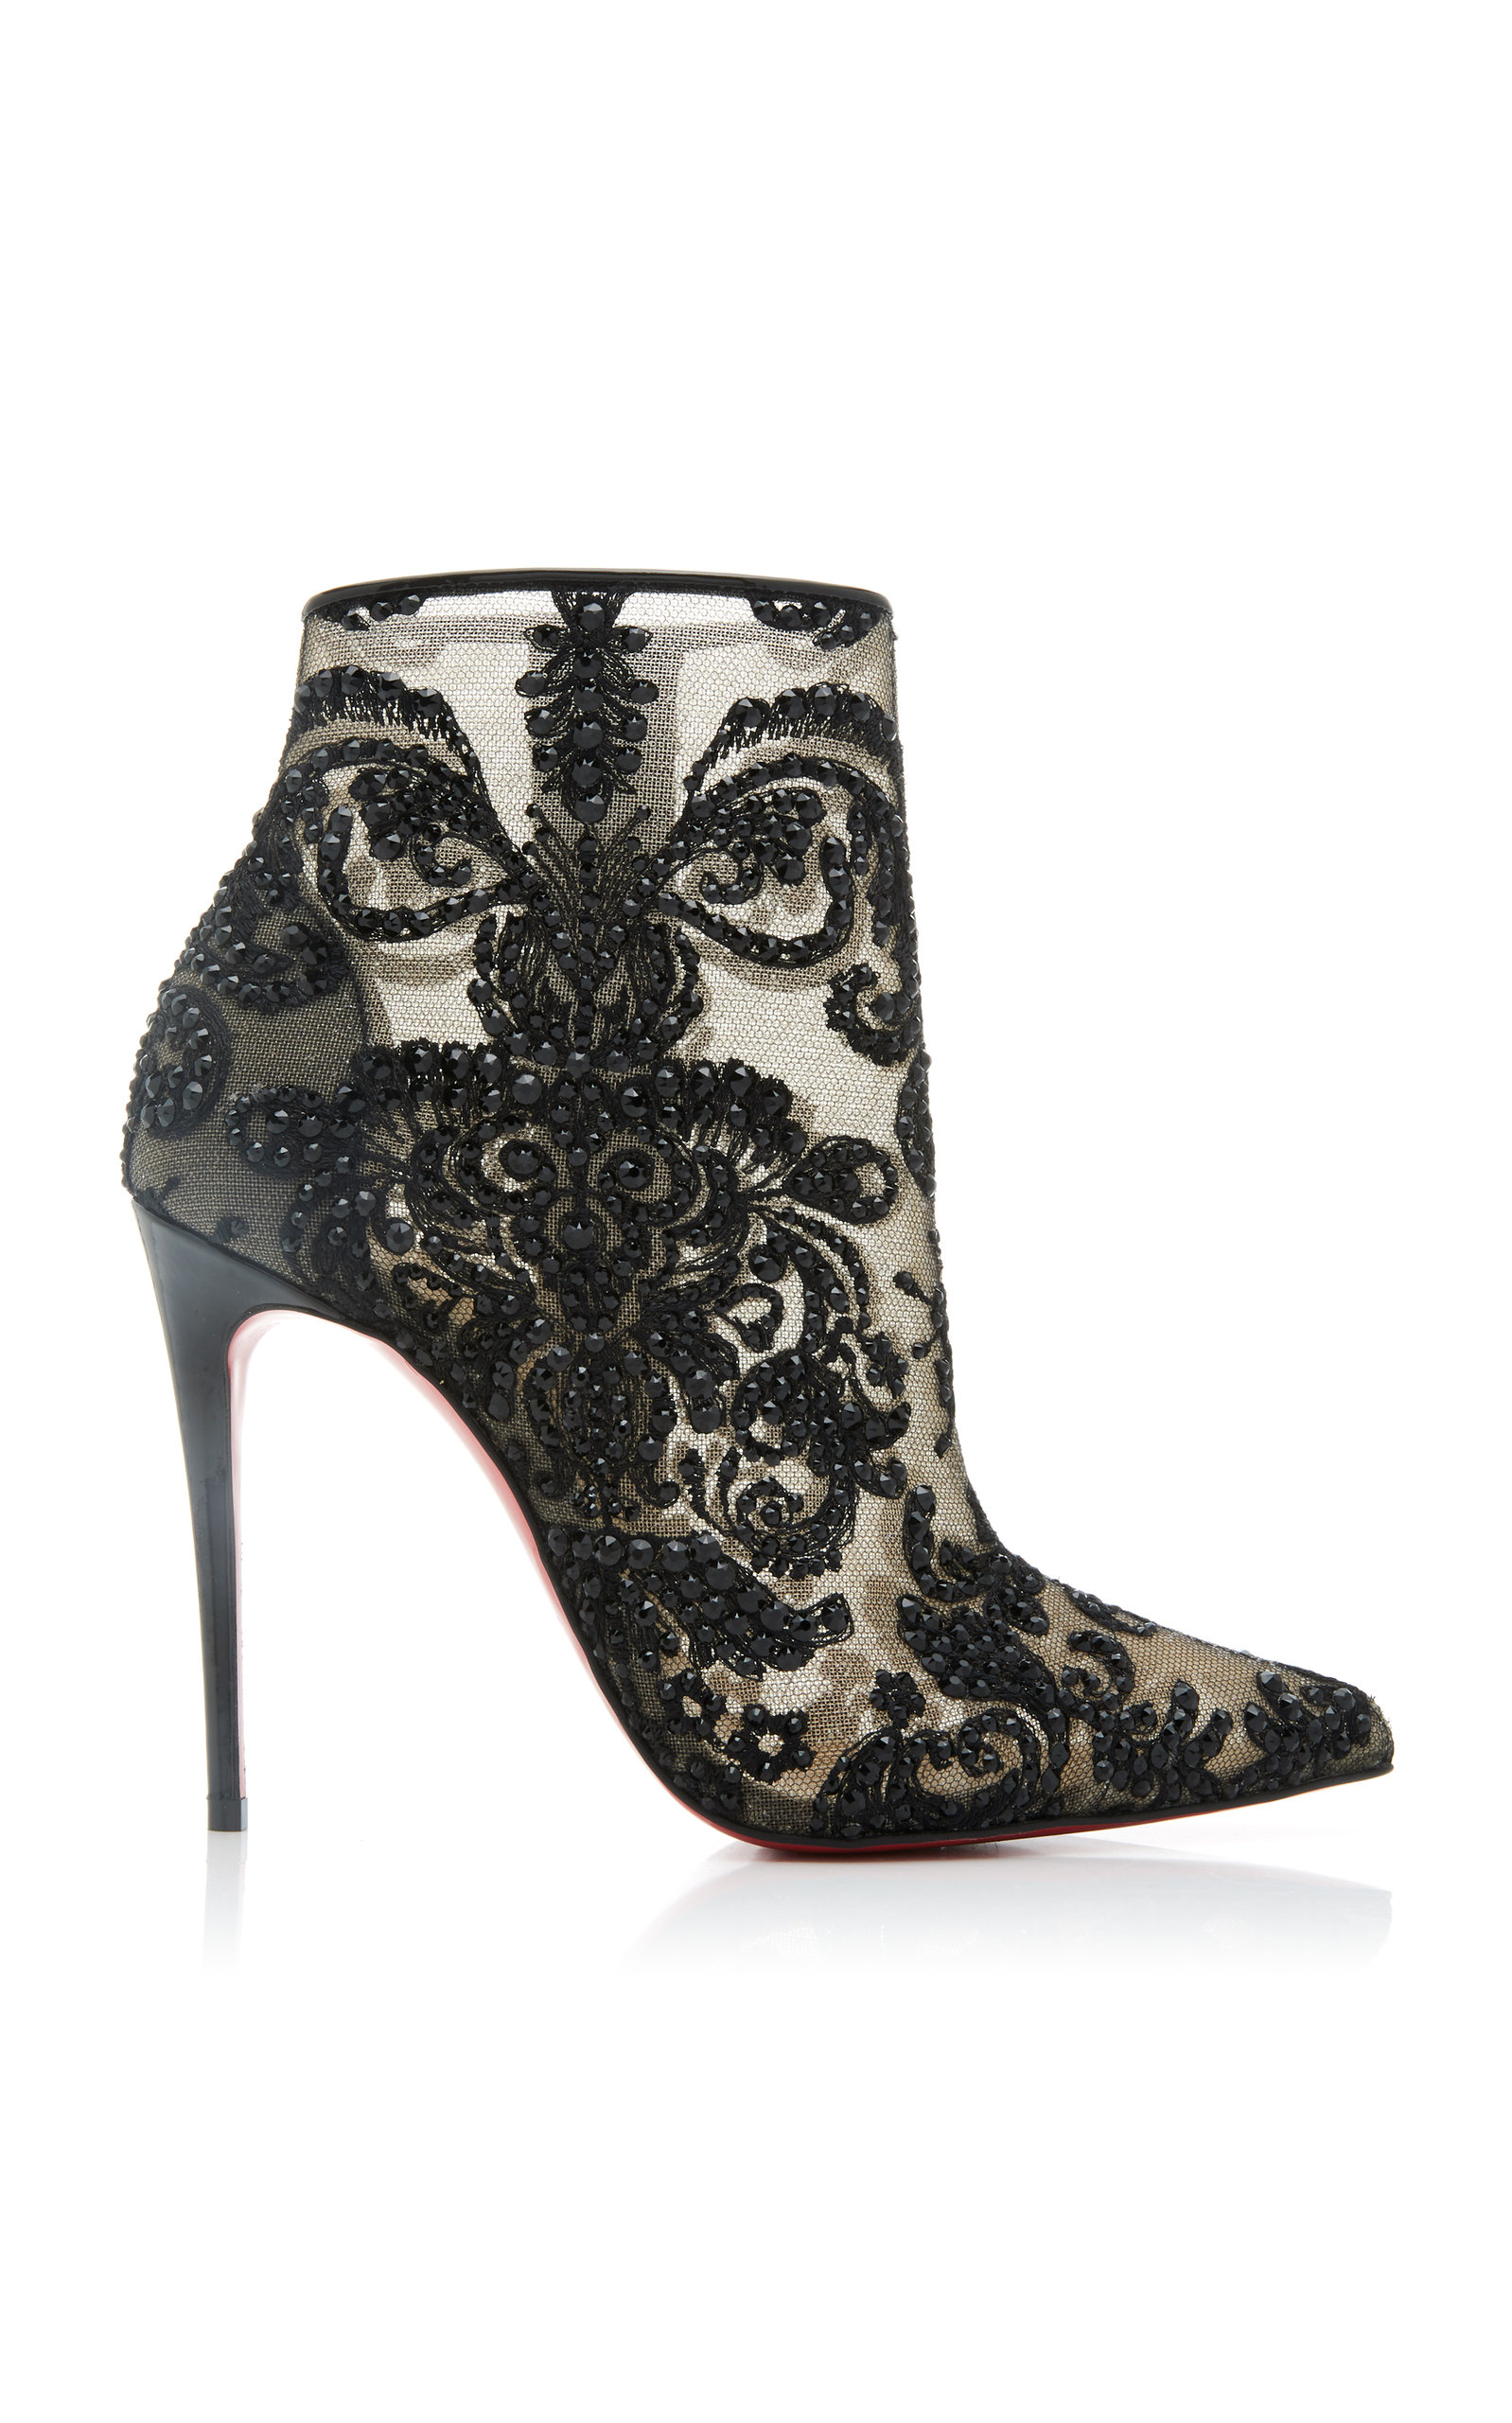 8b66b1d15a9 Exclusive Gipsy Embellished Mesh Ankle Boots